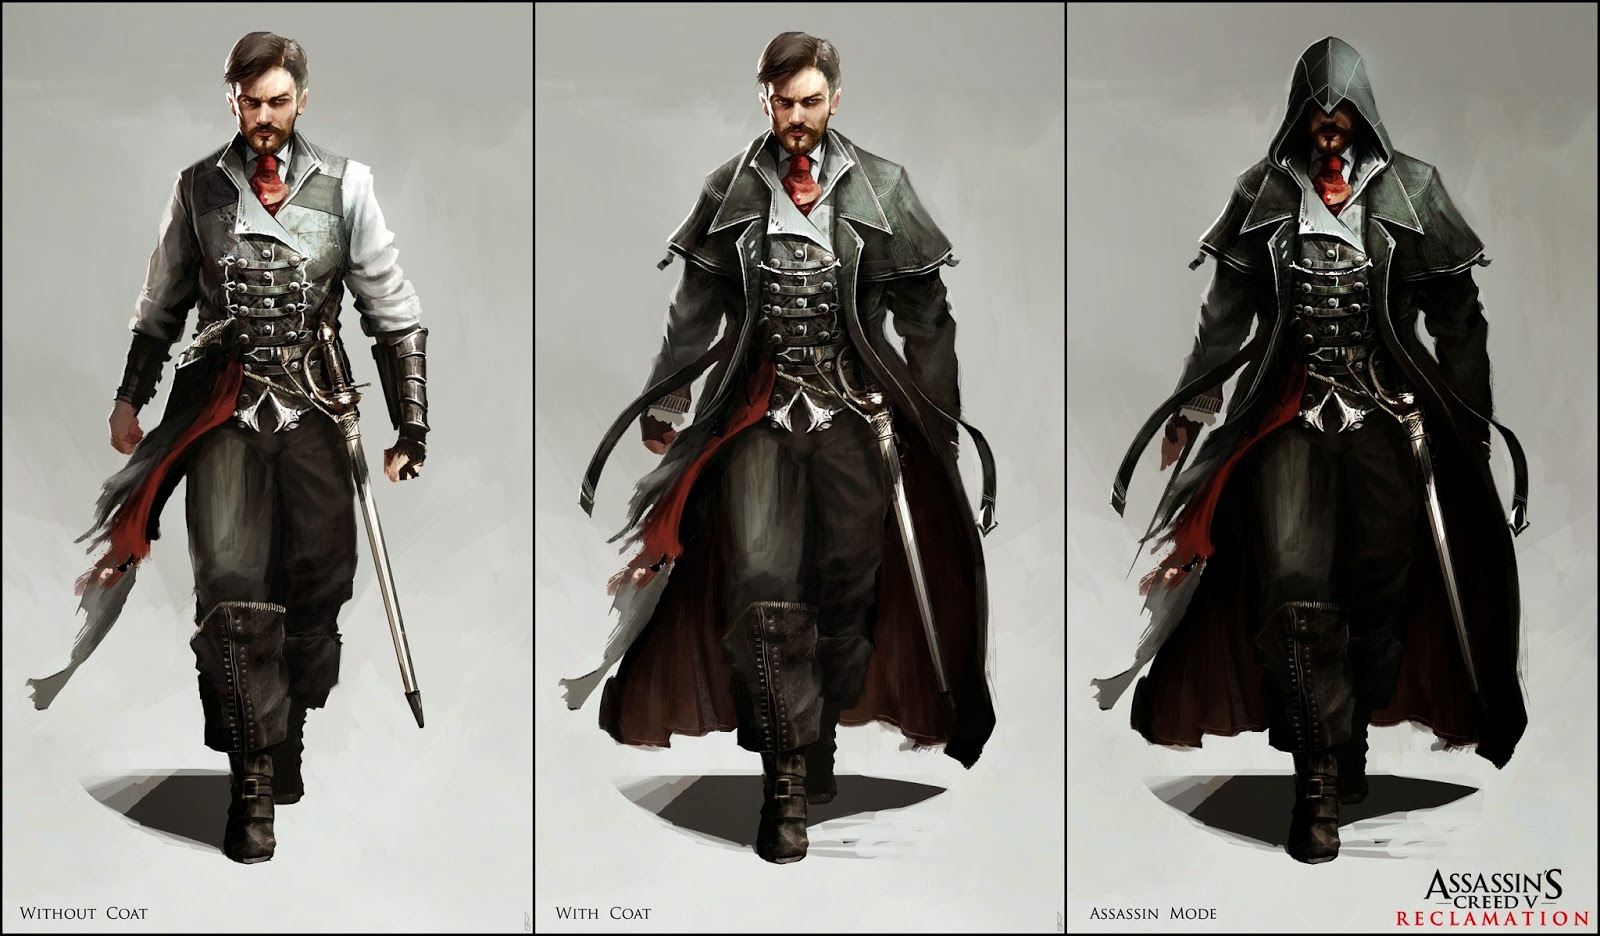 assassins creed unity wallpapers - 152 Assassin s Creed Unity HD Wallpapers Backgrounds